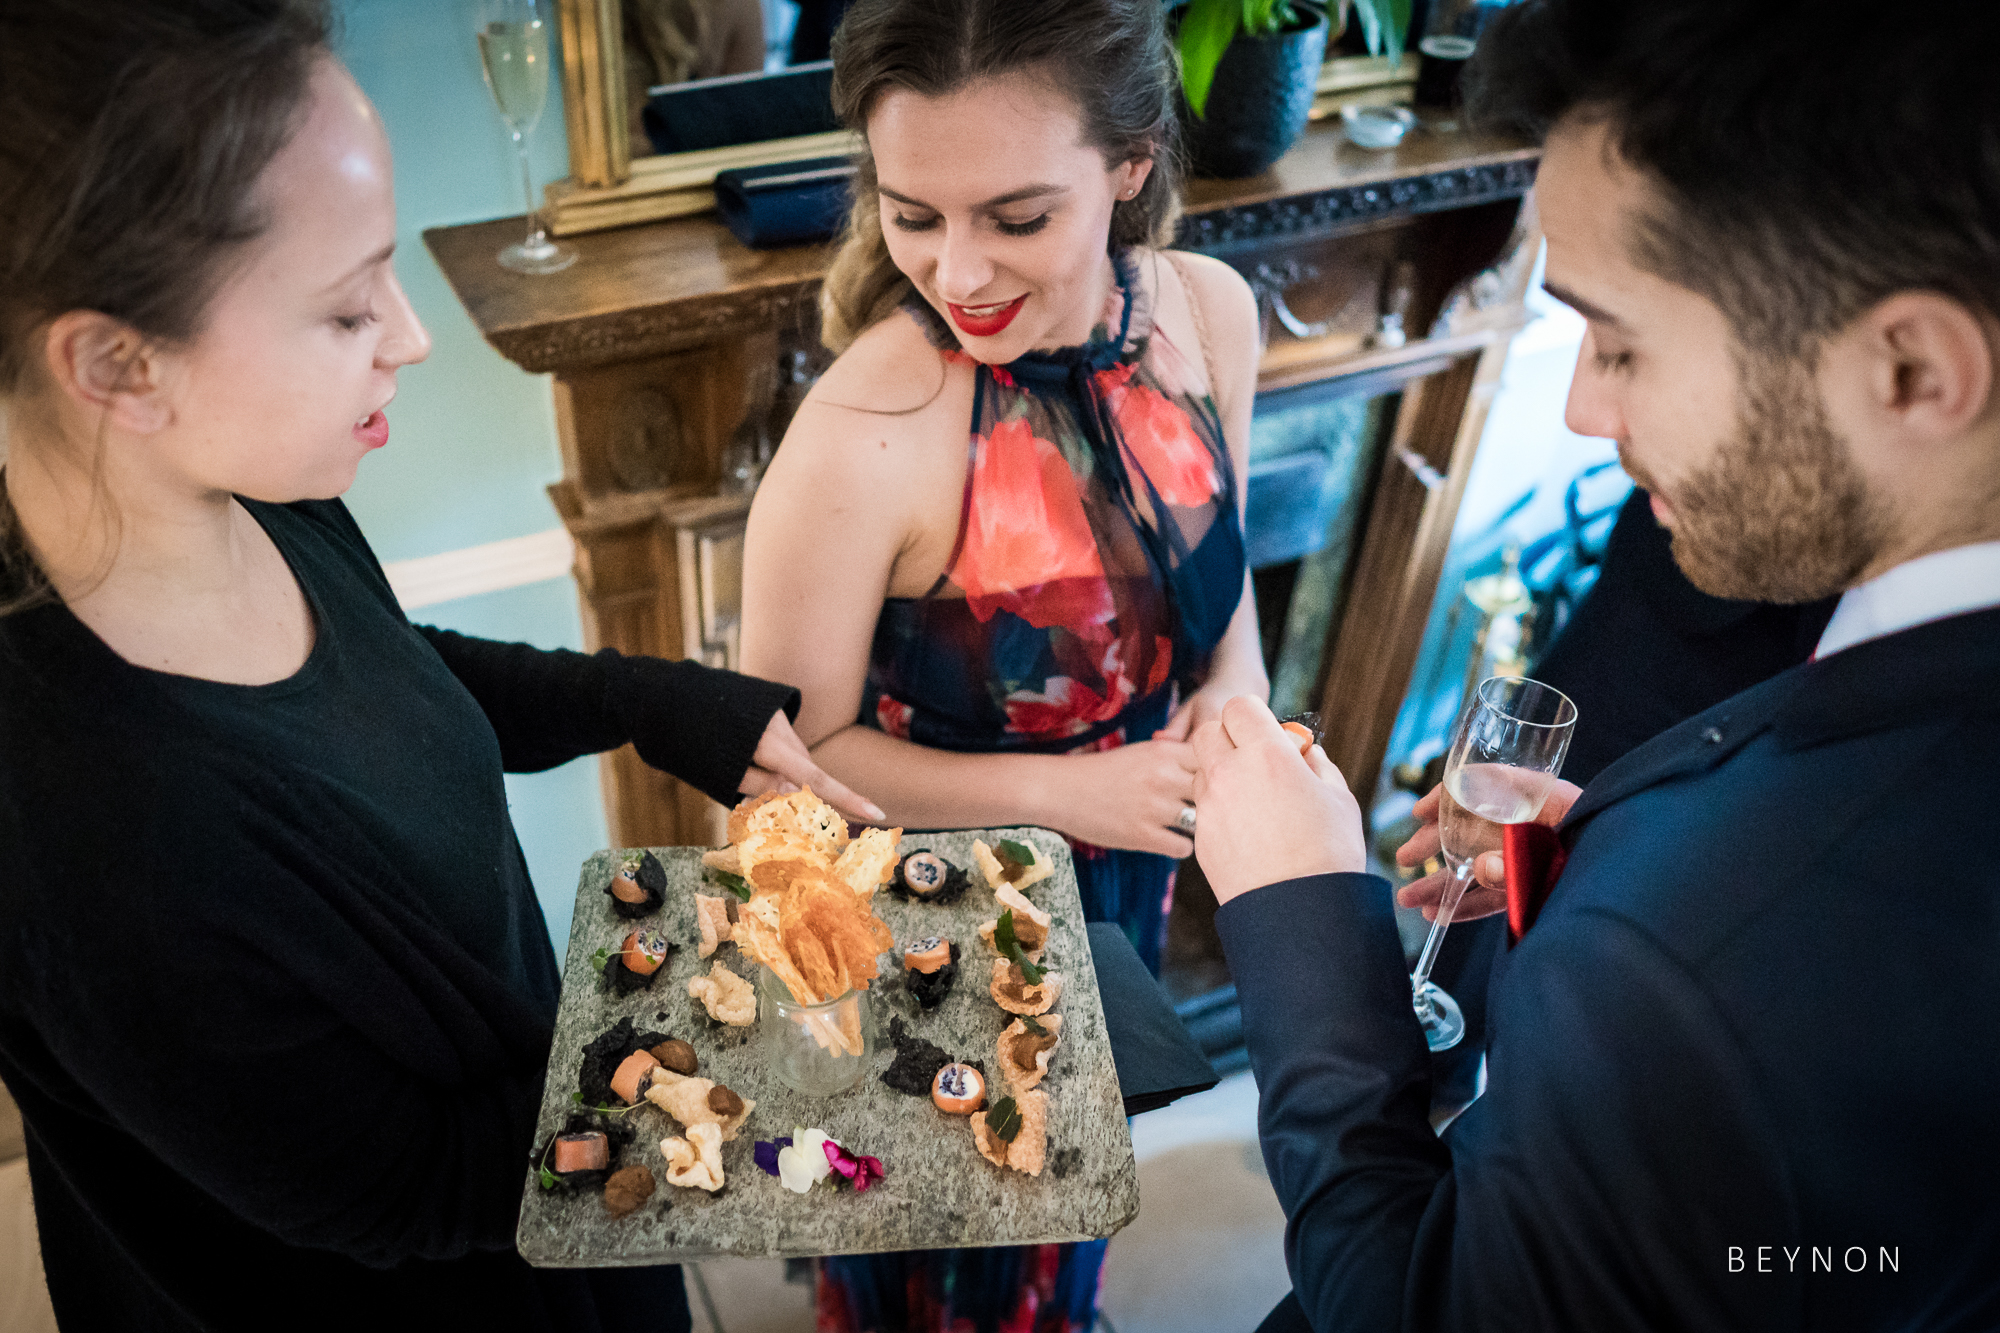 Canapes are handed around by venue staff